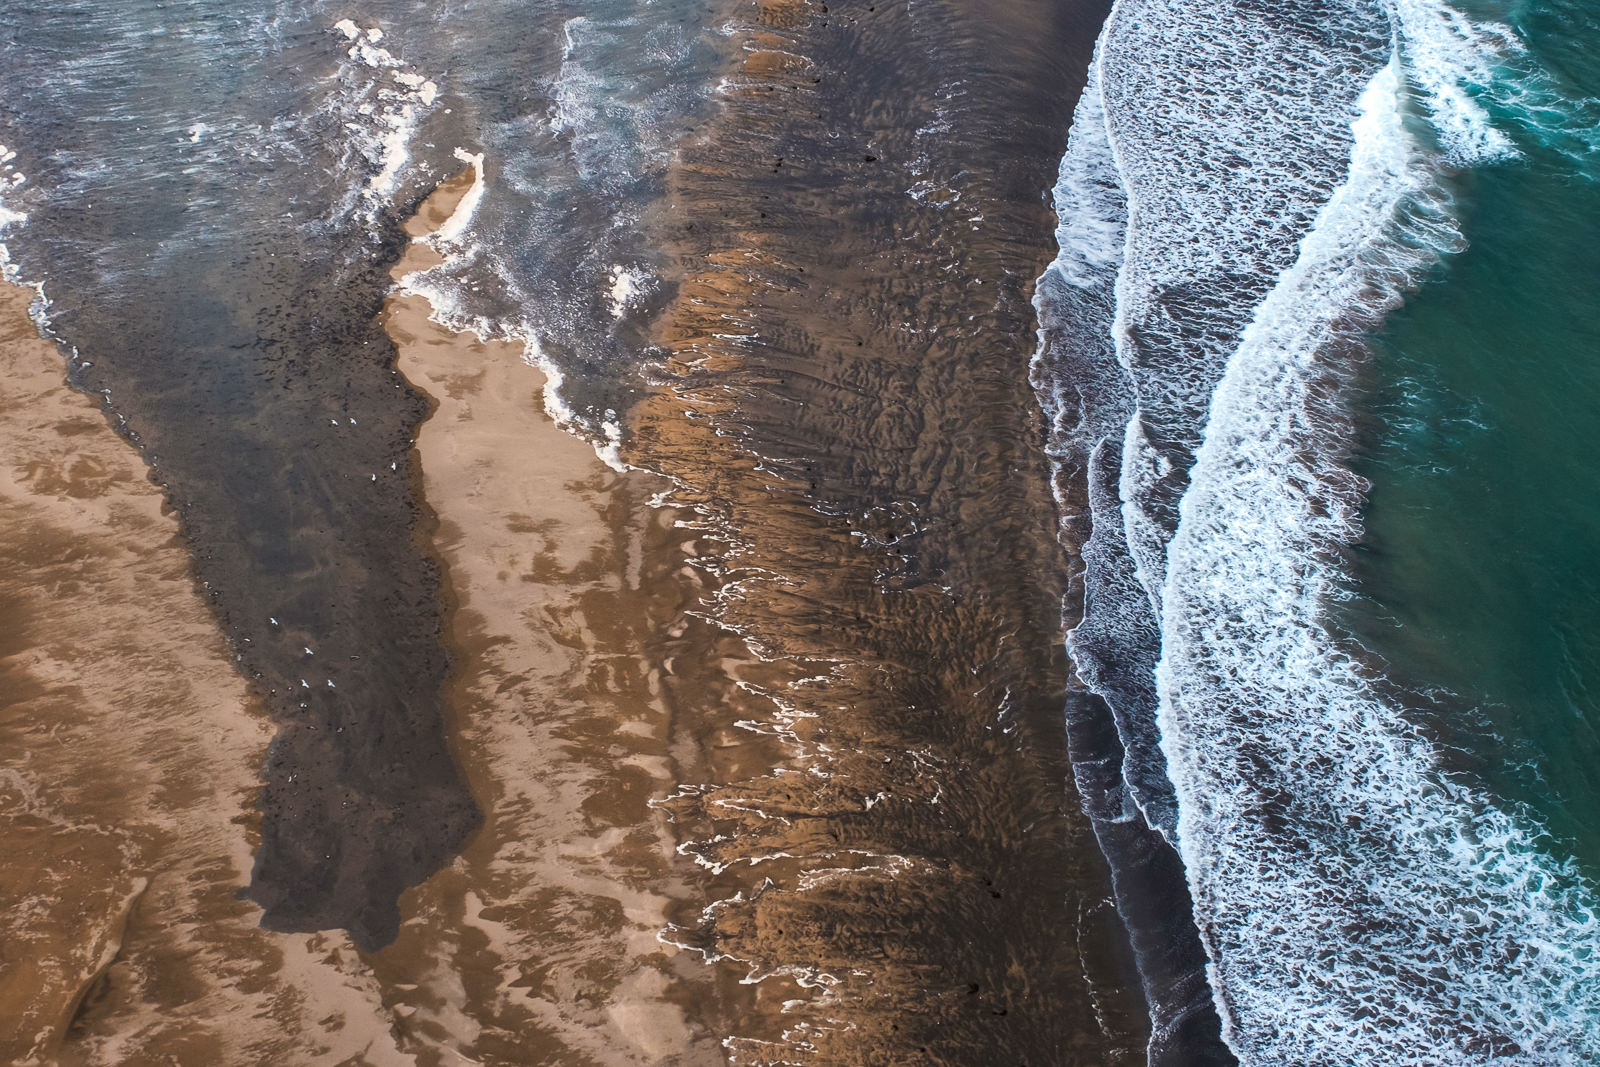 West Iceland coast line from above, shot taken from a small airplane (Cessna). A few flying birds on a left side for scale.   (XF 16-55mm f2.8 at 22mm 1/1000 f4.5 ISO800)